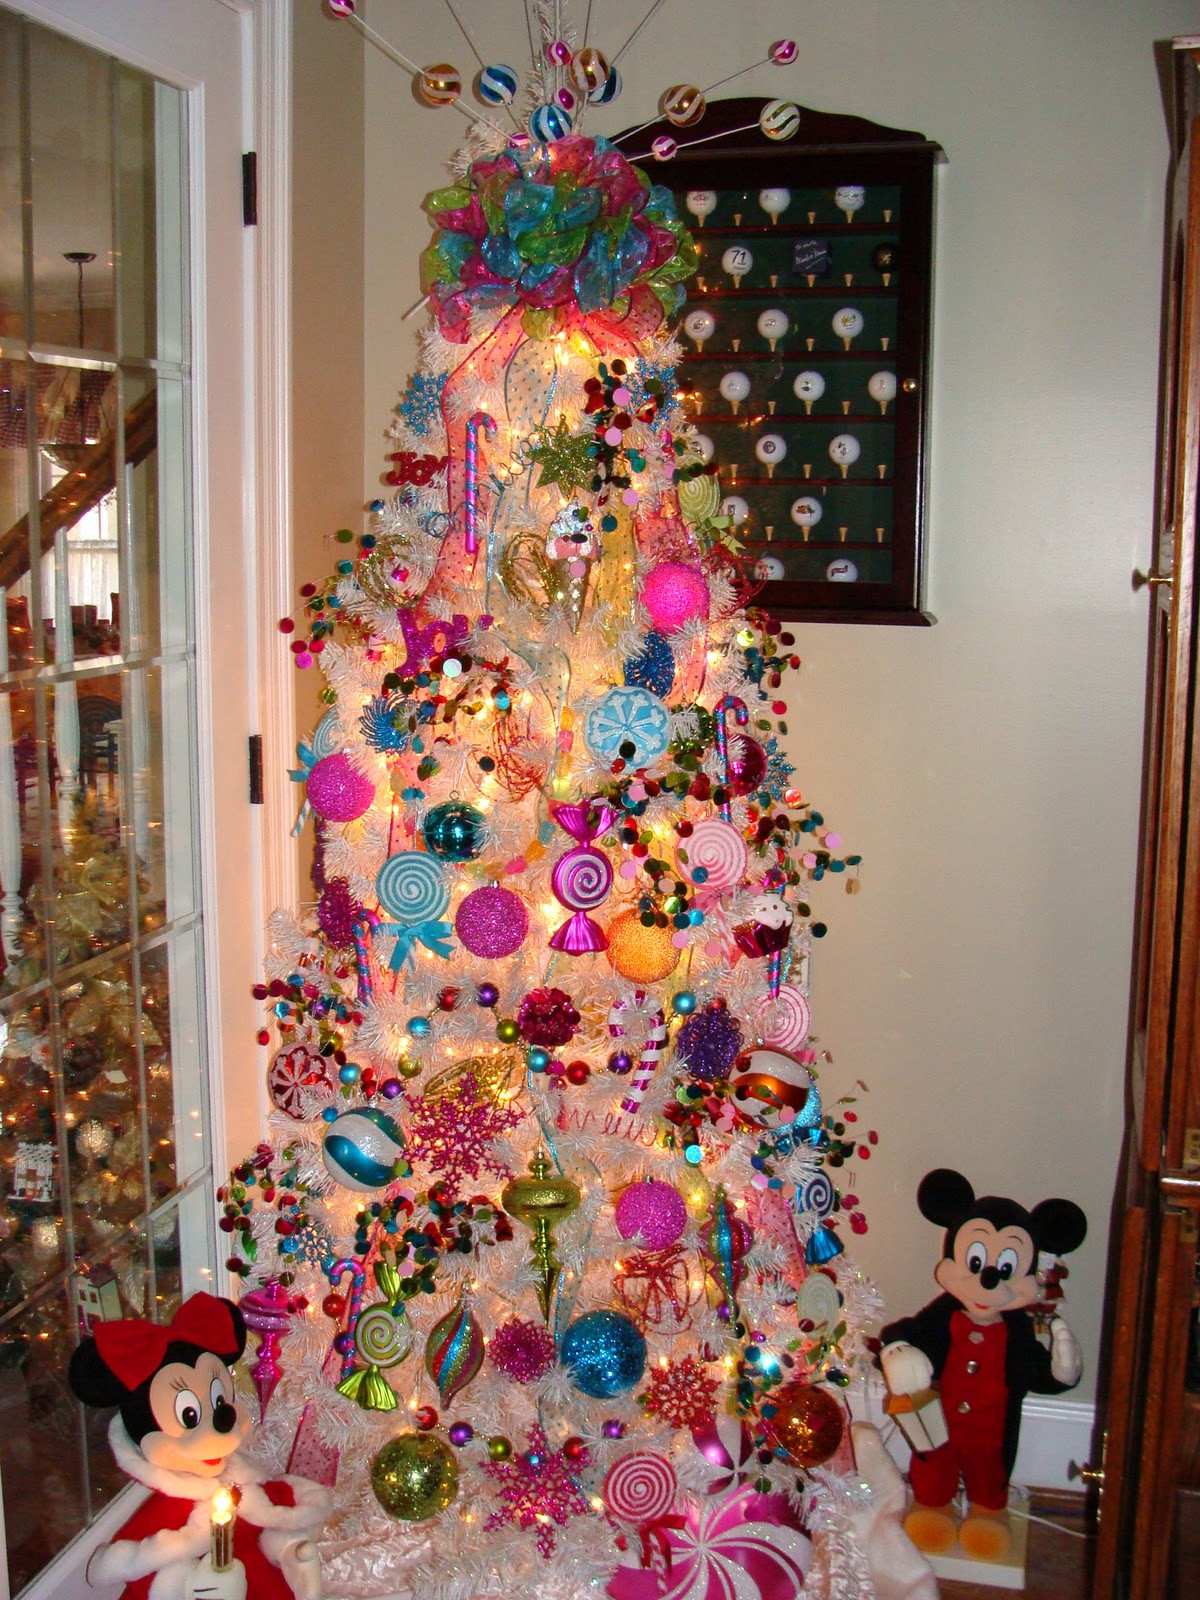 Candy Christmas Lights  46 Famous Candy Christmas Tree Decorations Ideas